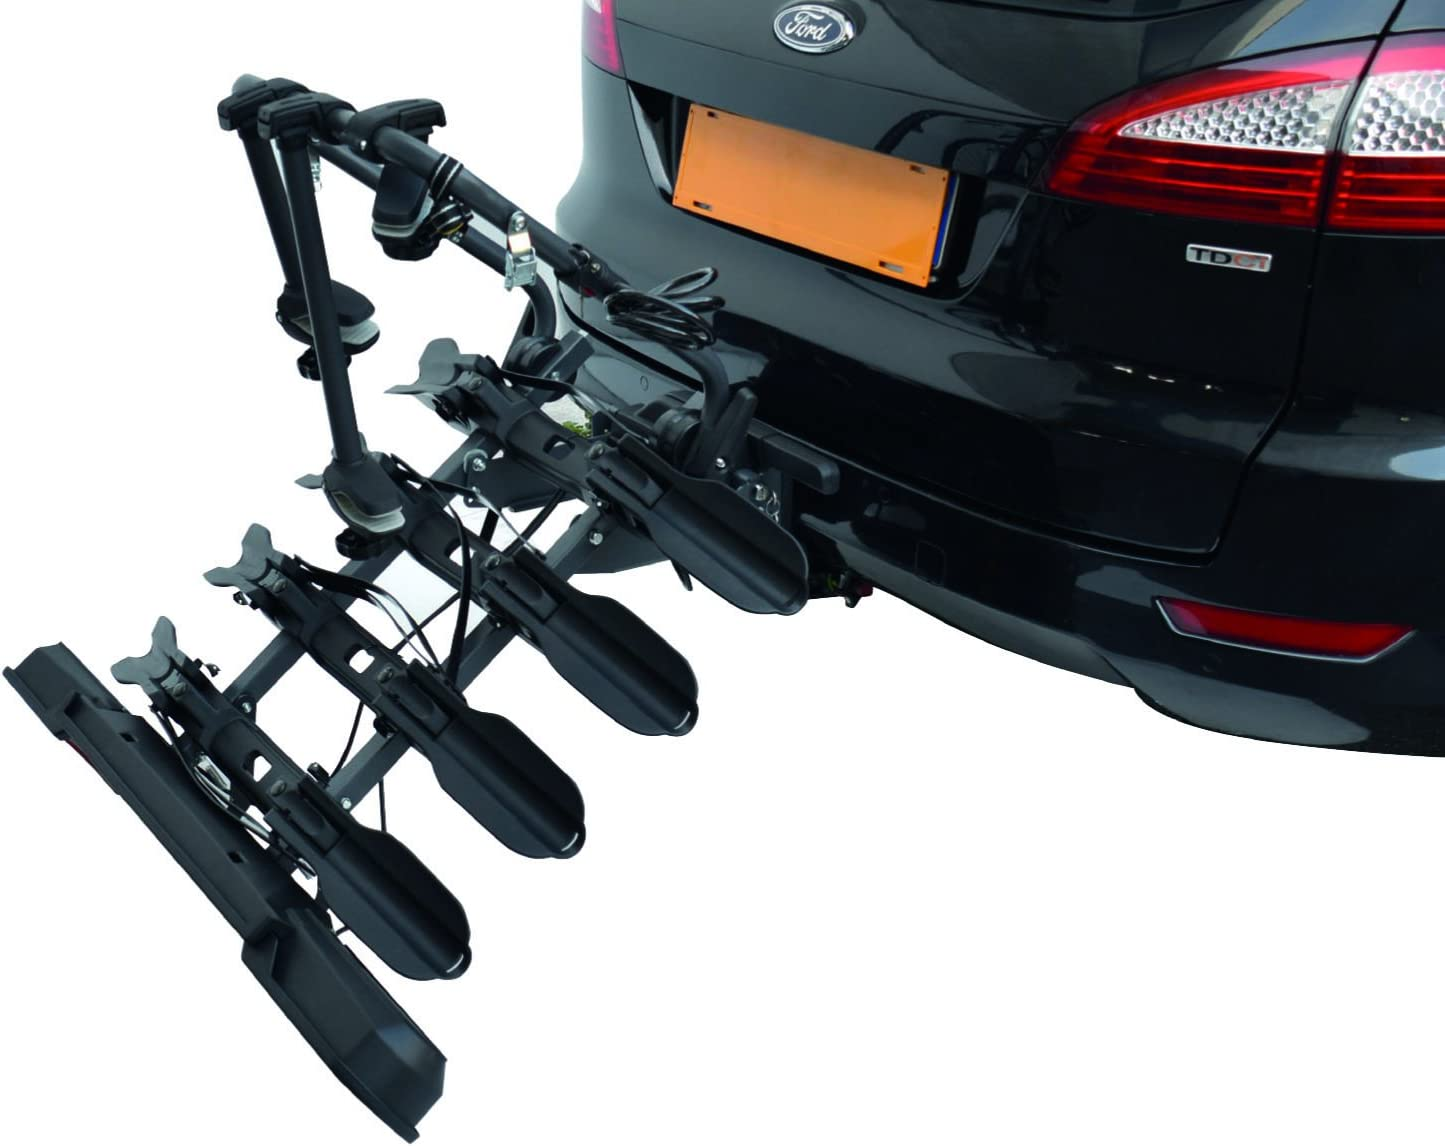 Peruzzo Pure Instinct Rear Car Boot Cycle Carrier 3 Bike Rack Holder Bicycle